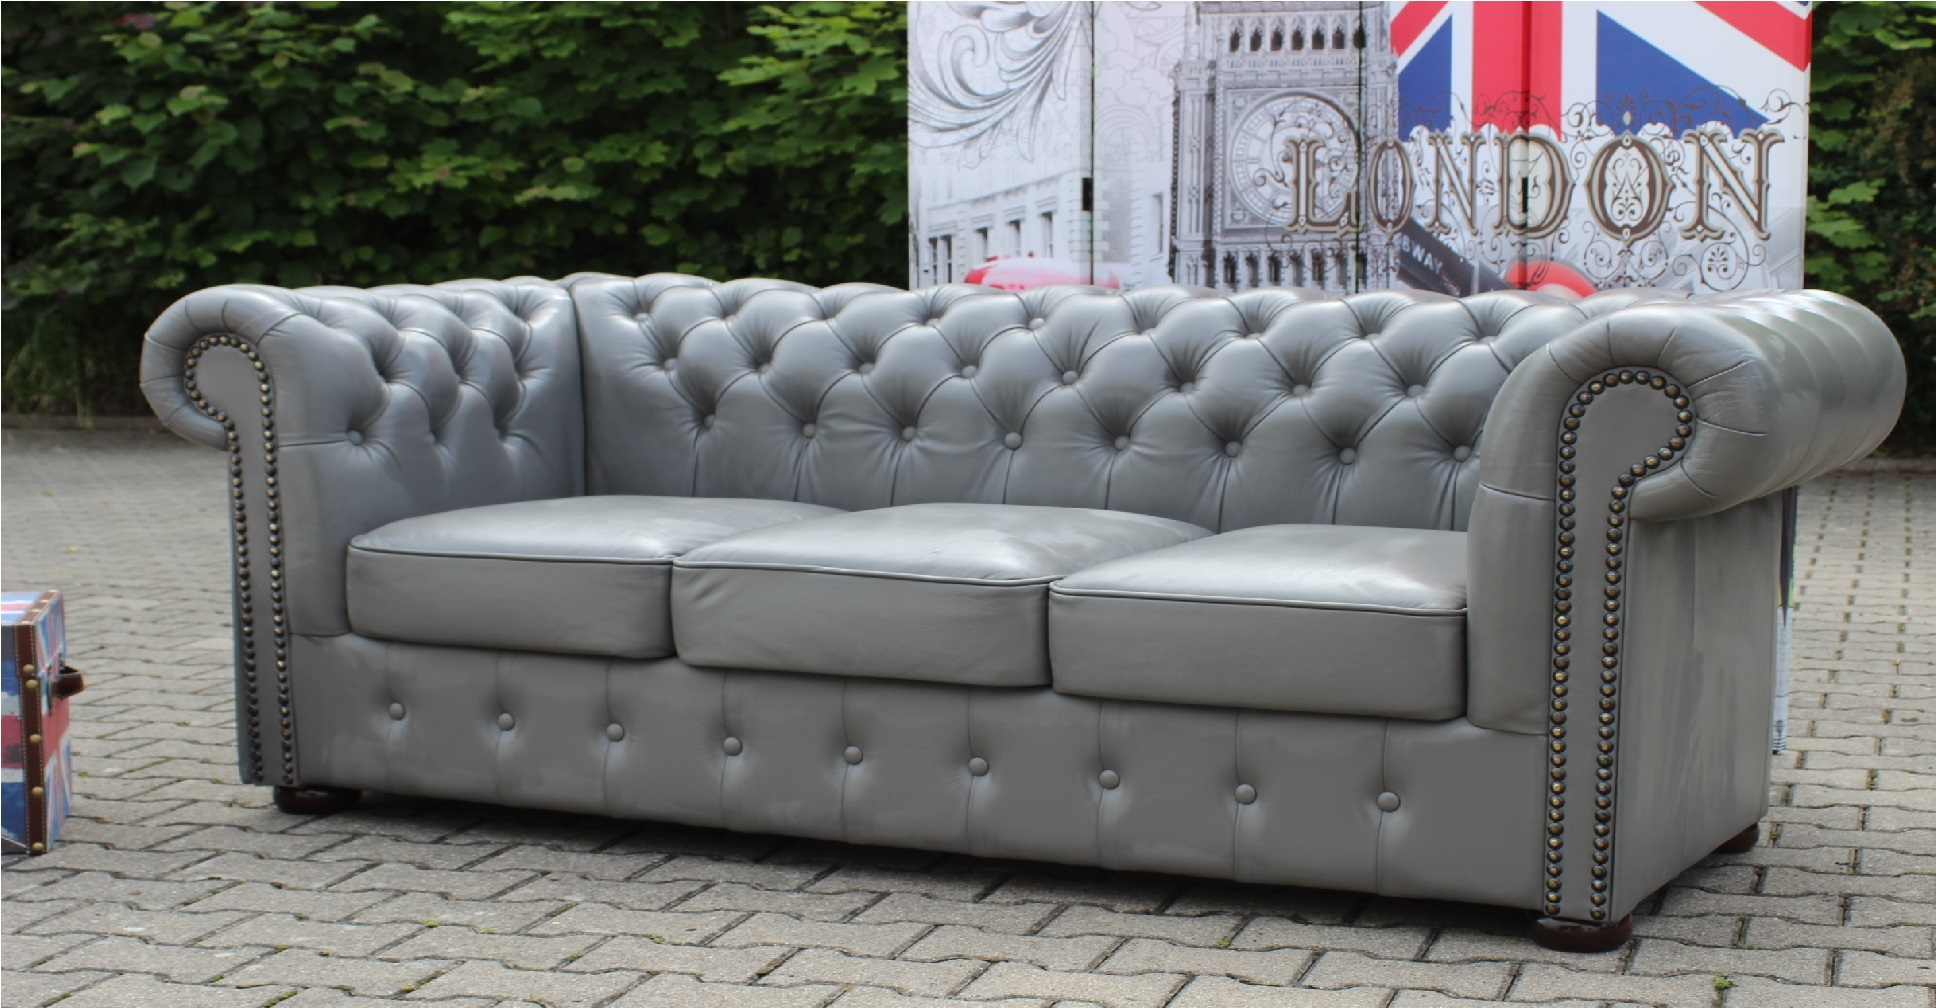 chesterfield sofa 100 vollleder rindsleder ledersofa polster couch garnitur neu. Black Bedroom Furniture Sets. Home Design Ideas